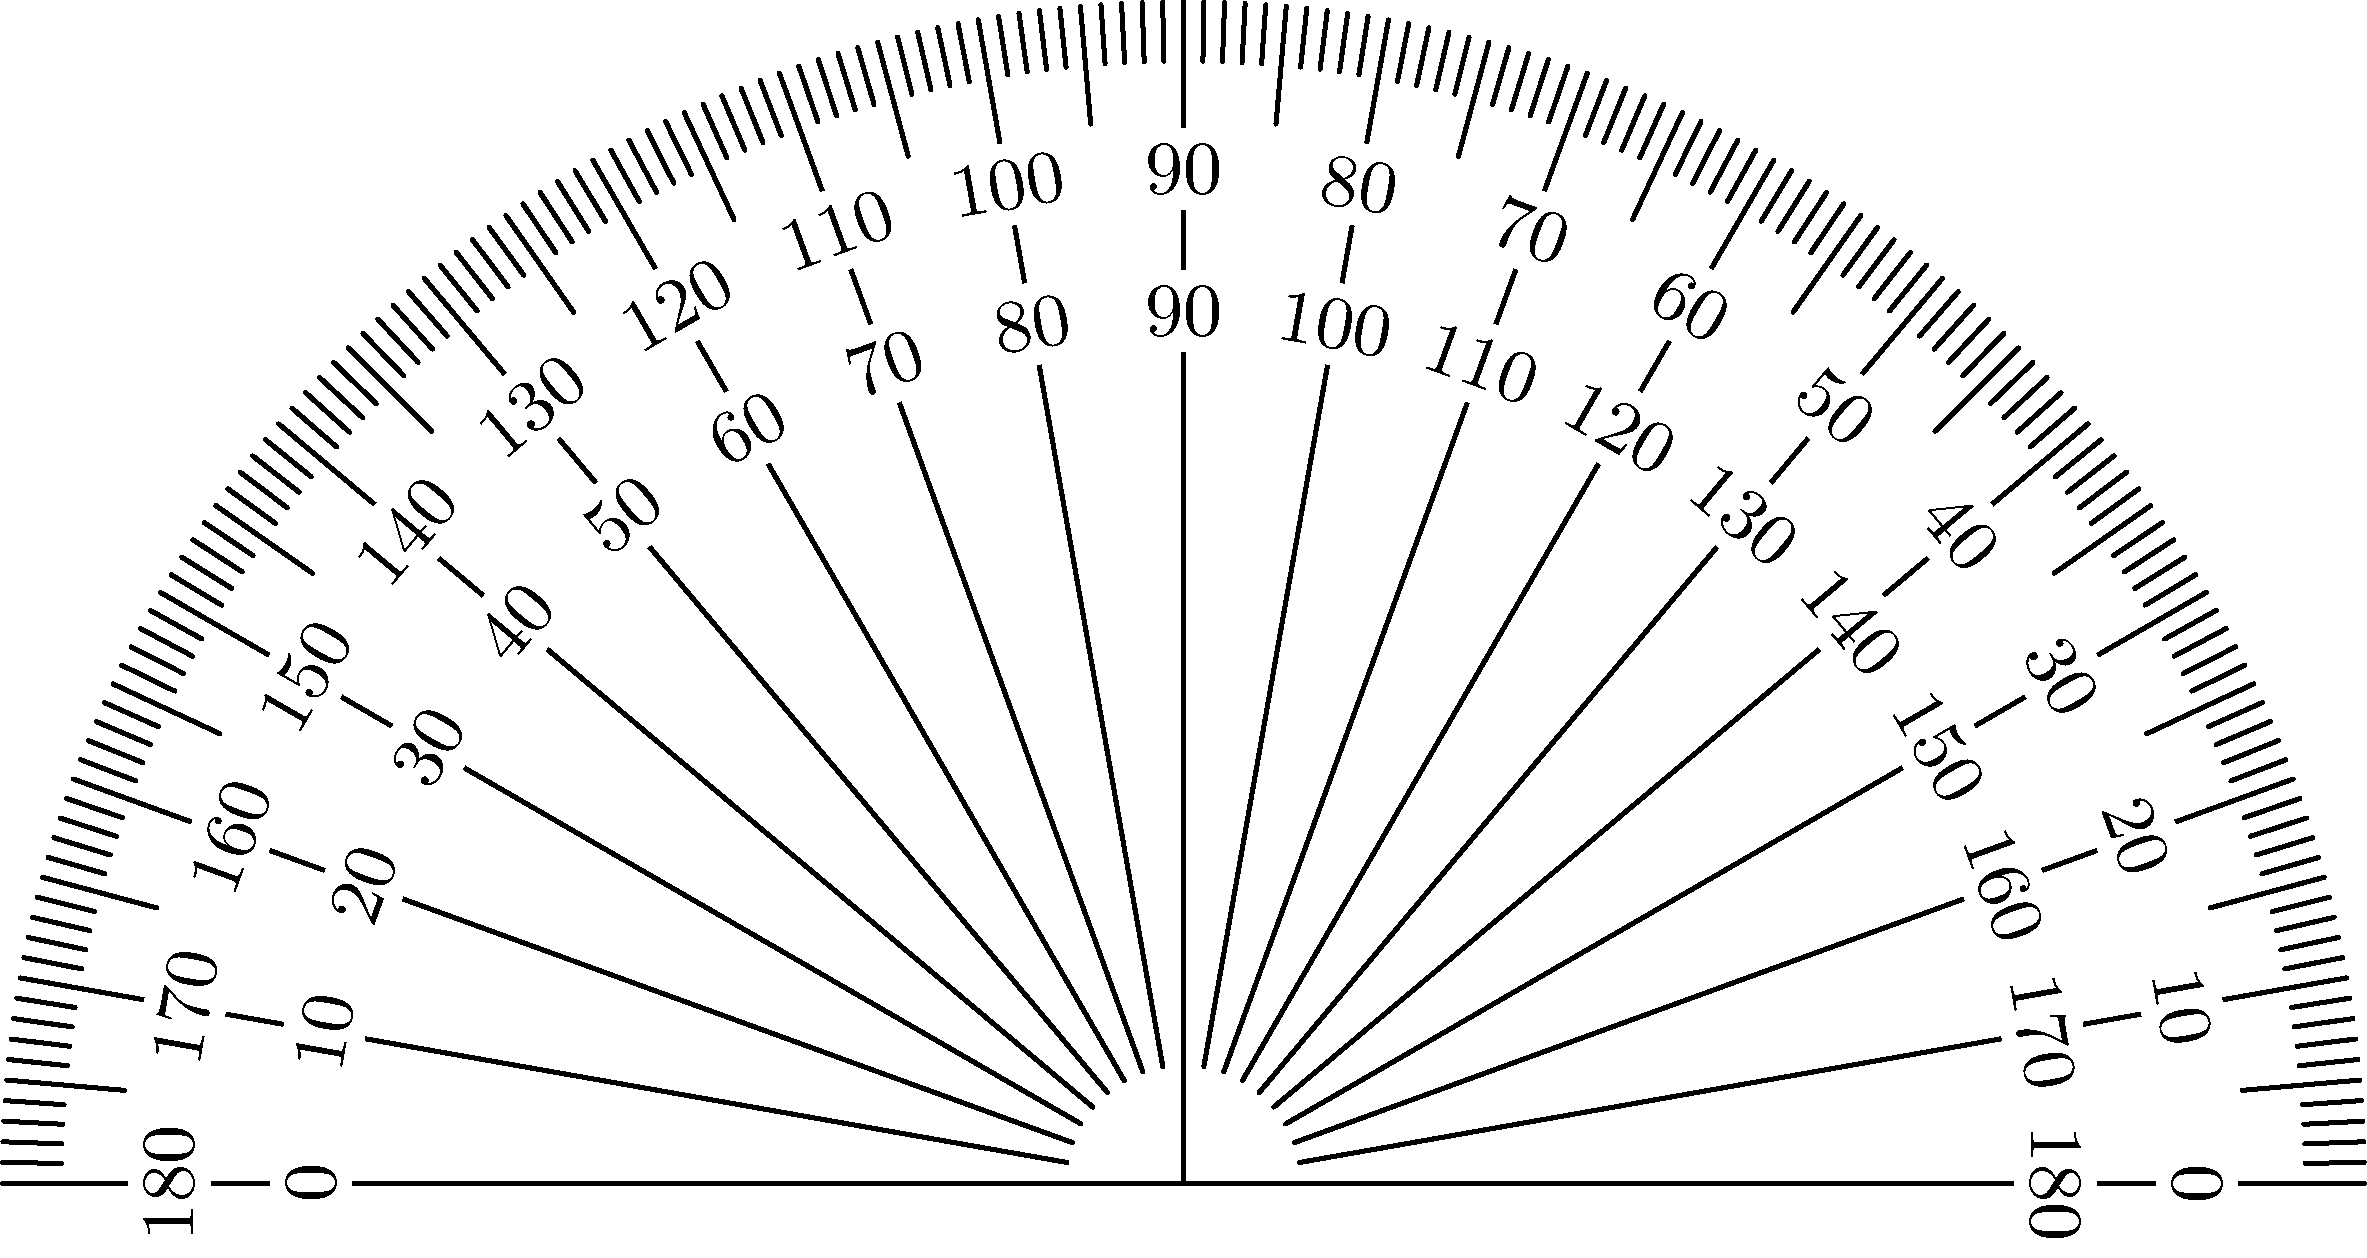 image relating to Protractor Printable Pdf identified as Tonja Lenderman Learned the ideal printable protractor for